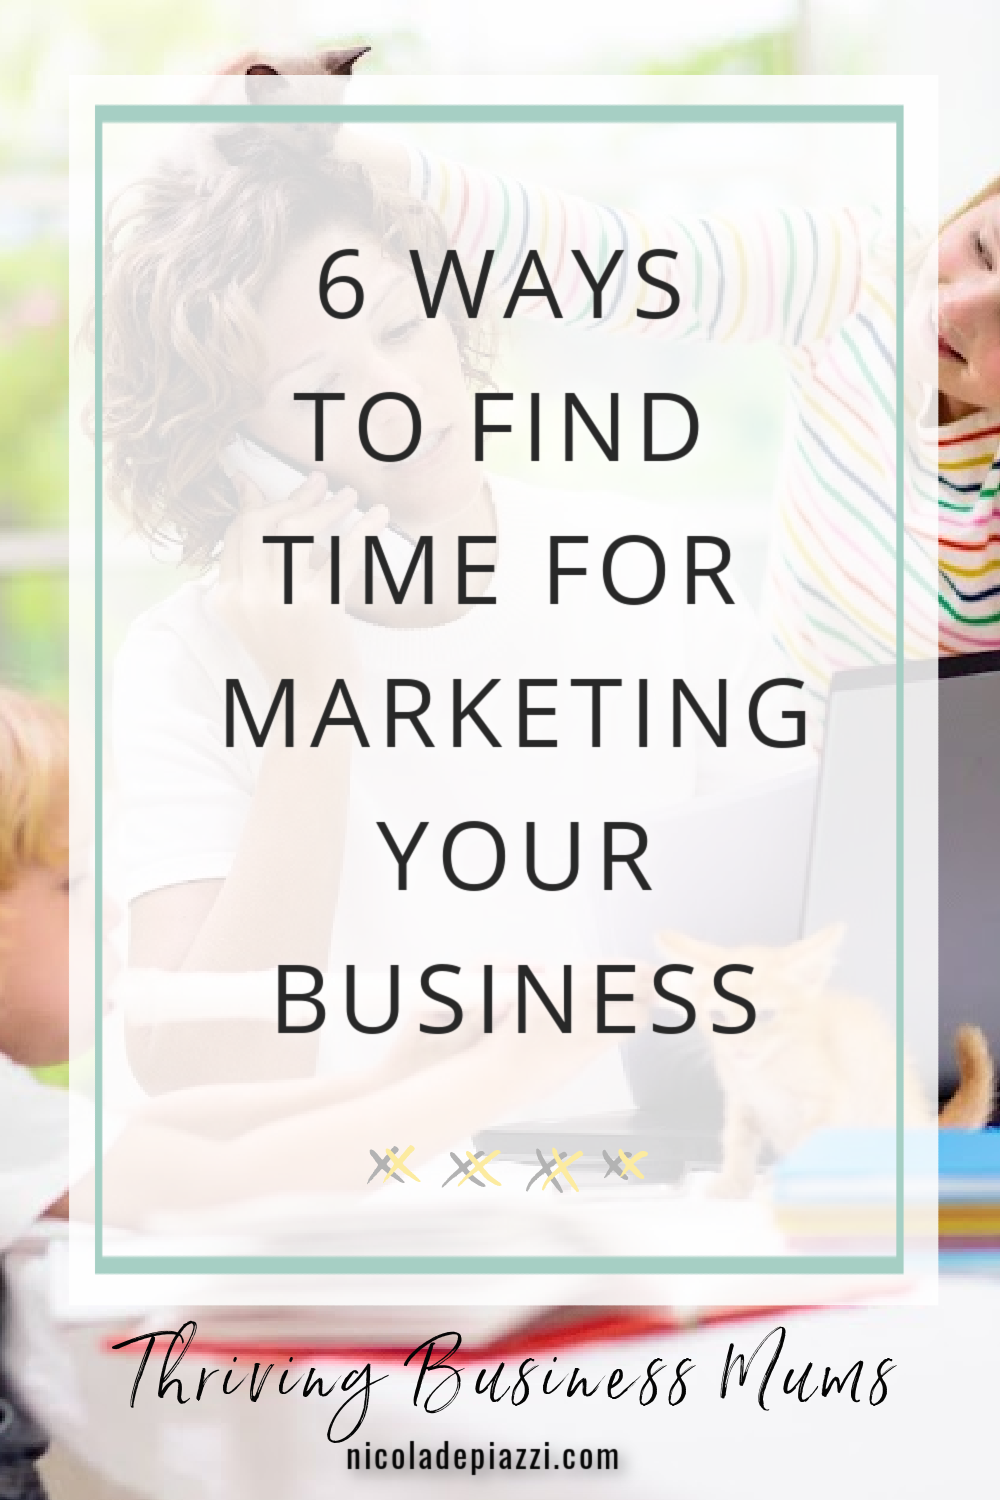 6 WAYS TO FIND TIME FOR YOUR MARKETING